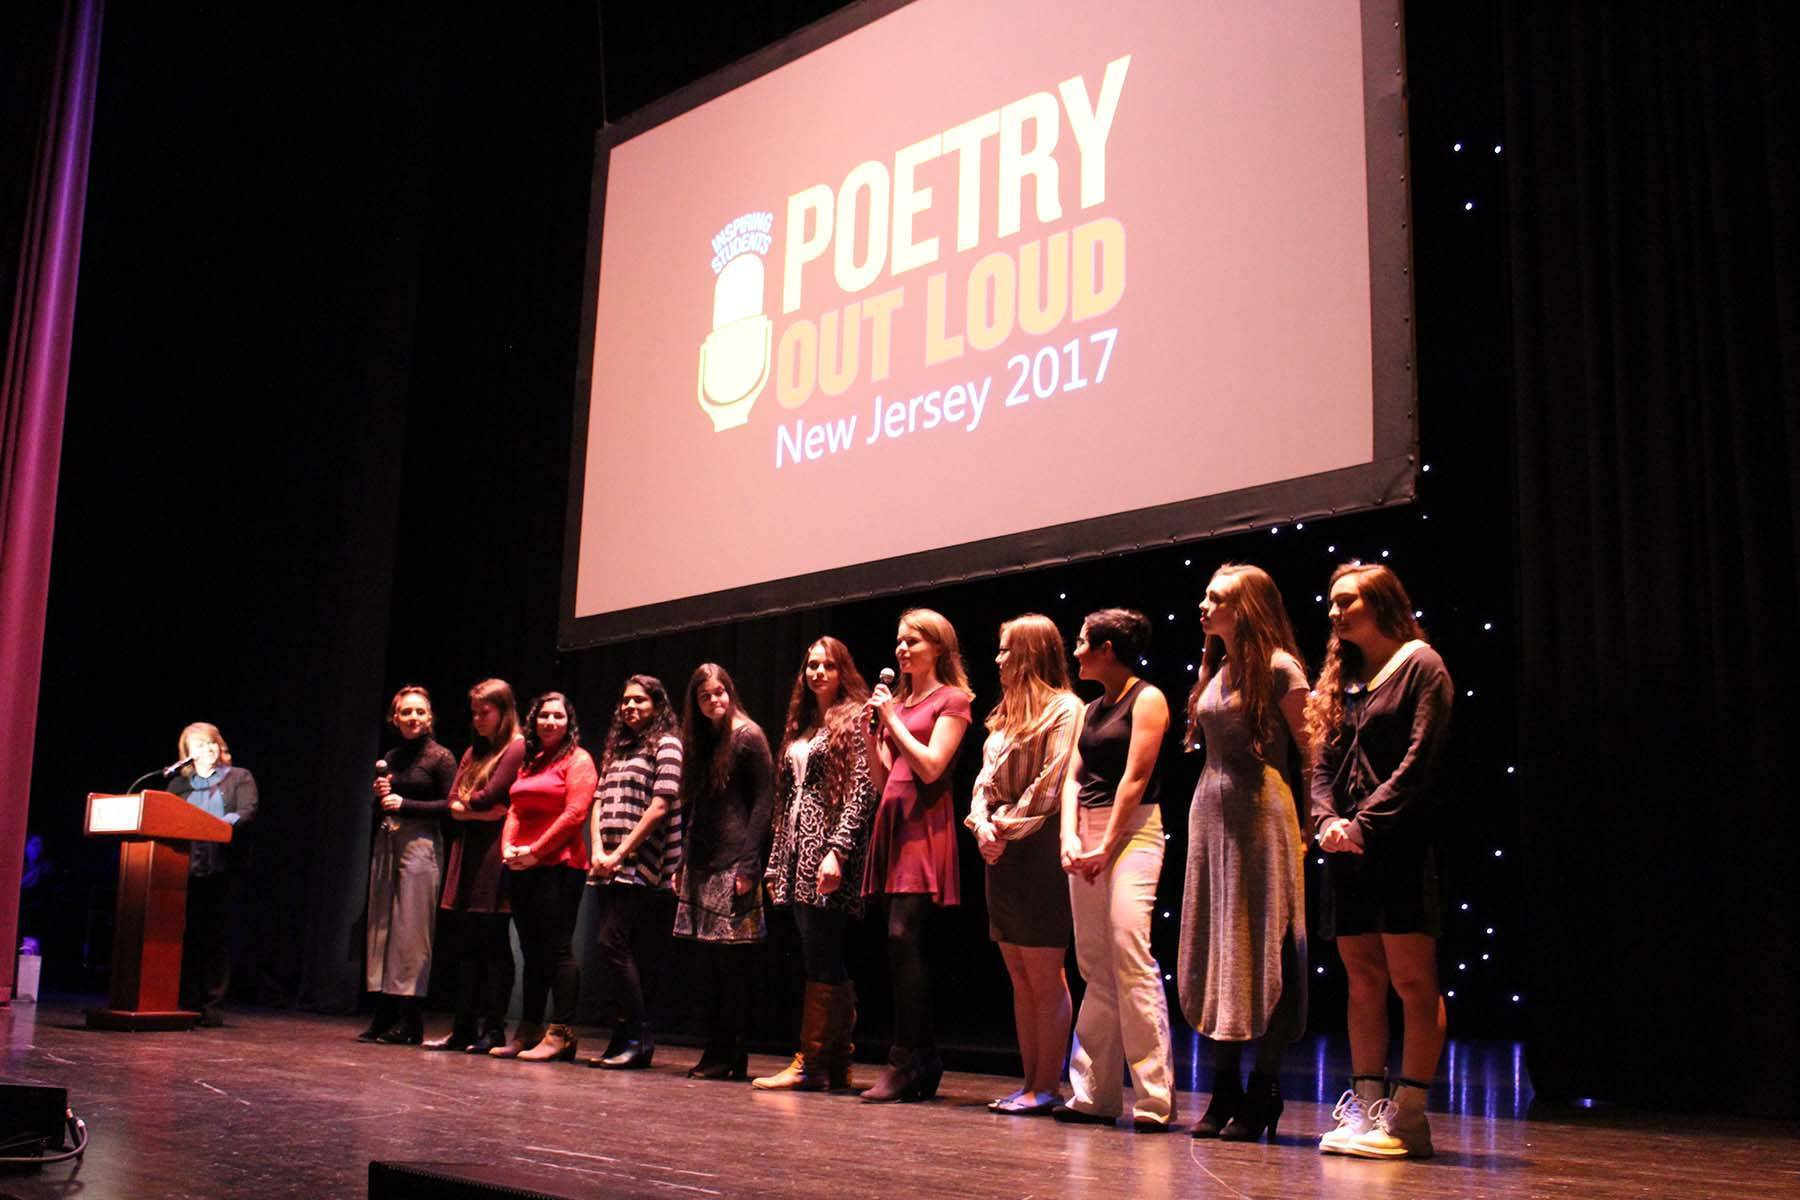 3c8debb4e141cca5261e_04d06b0354824230da42_PoetryOutLoud2017_press2.jpg